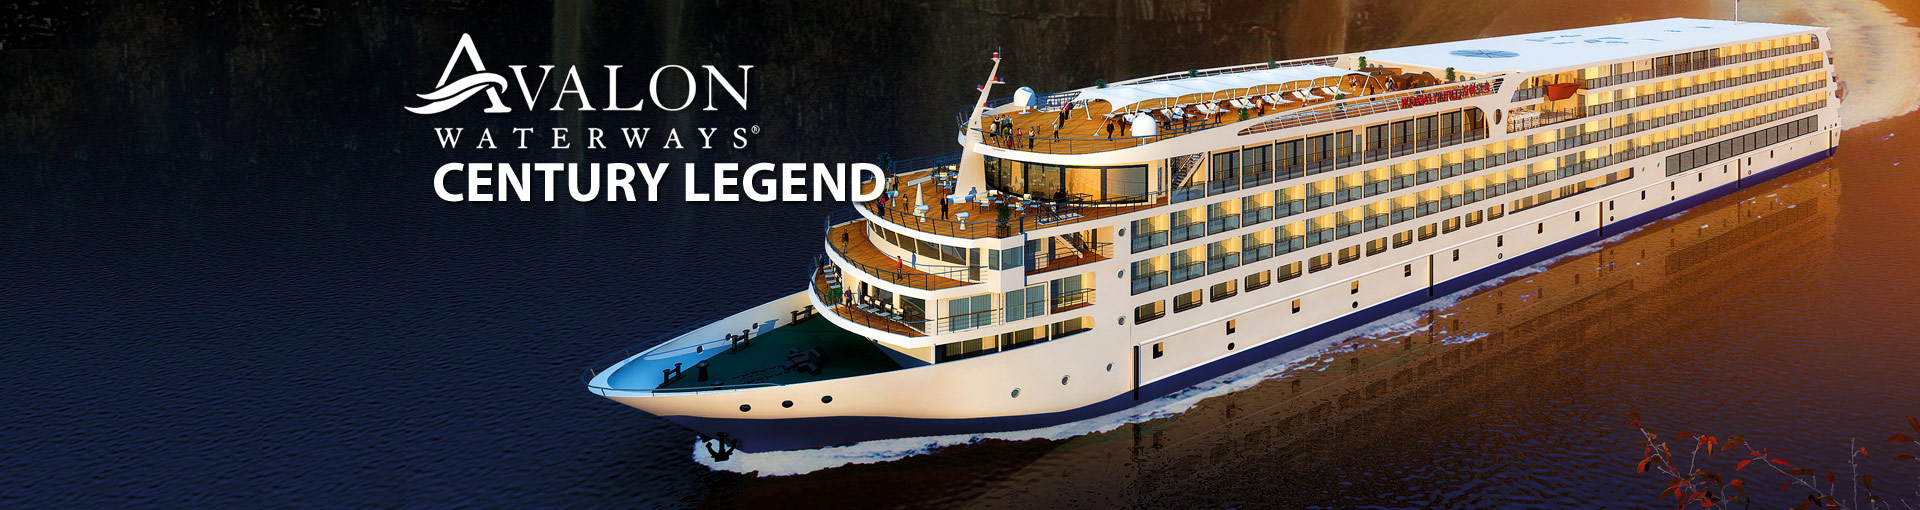 Avalon Waterways Century Legend river cruise ship